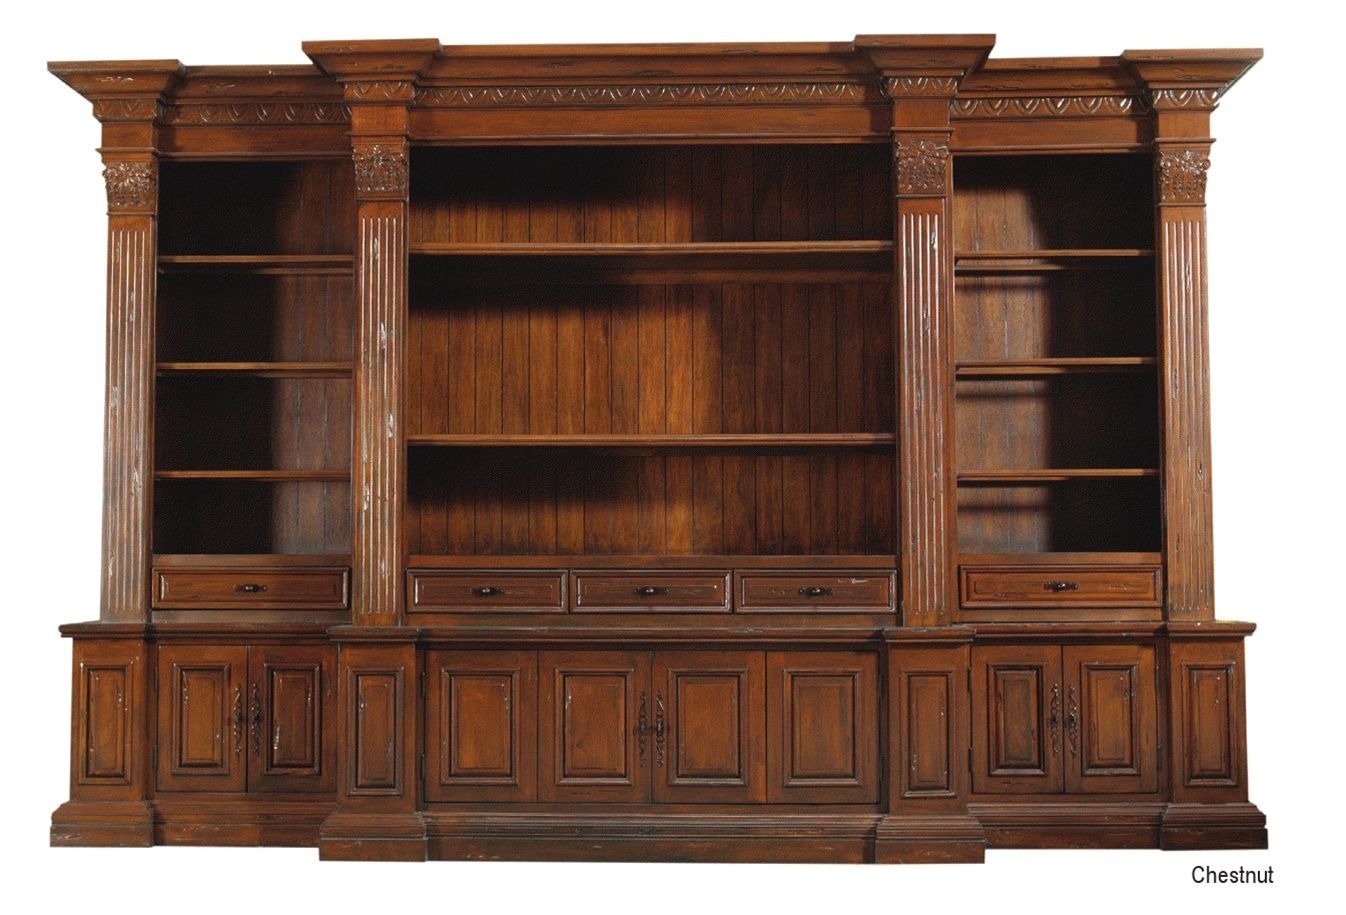 Marvelous Library Bookcase 112, Luxury High End Furniture